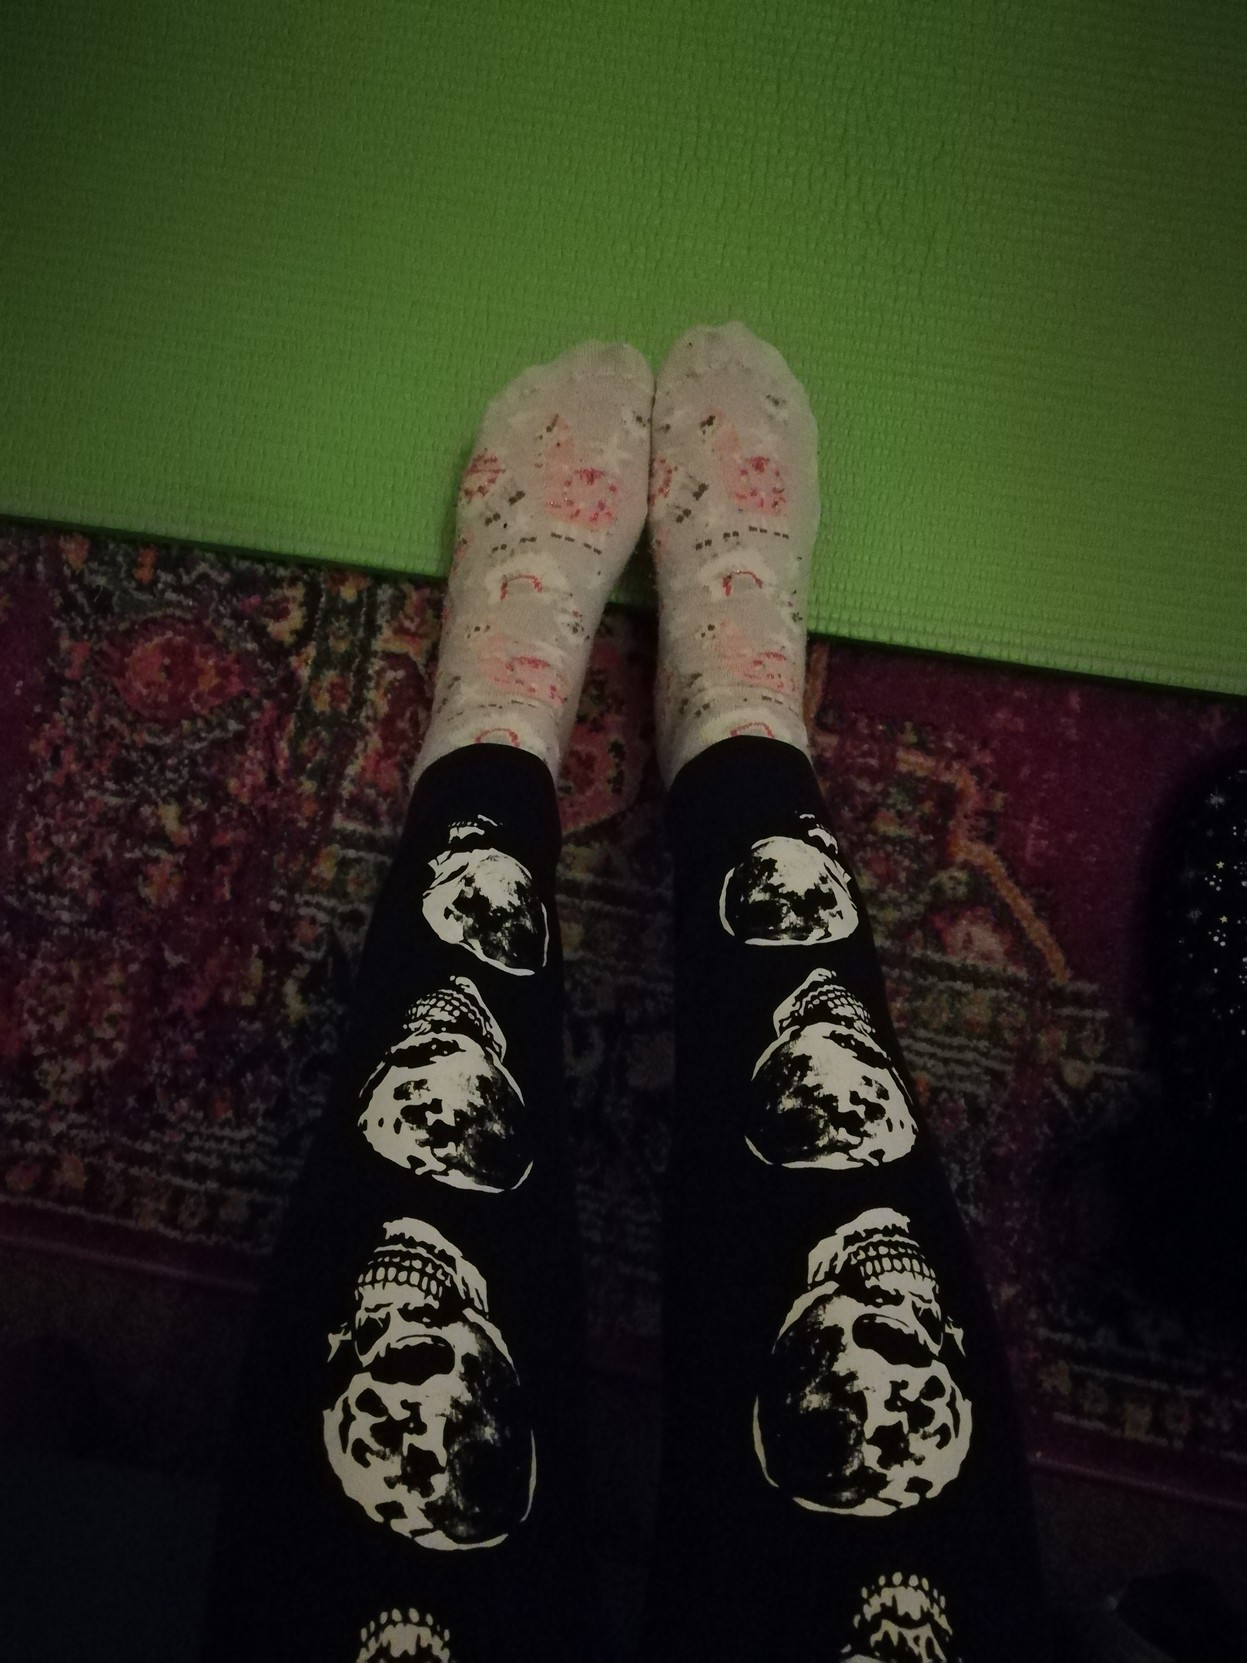 my legs that are black with moon skulls, contrasting with my socks which are lilac with pink and white llamas